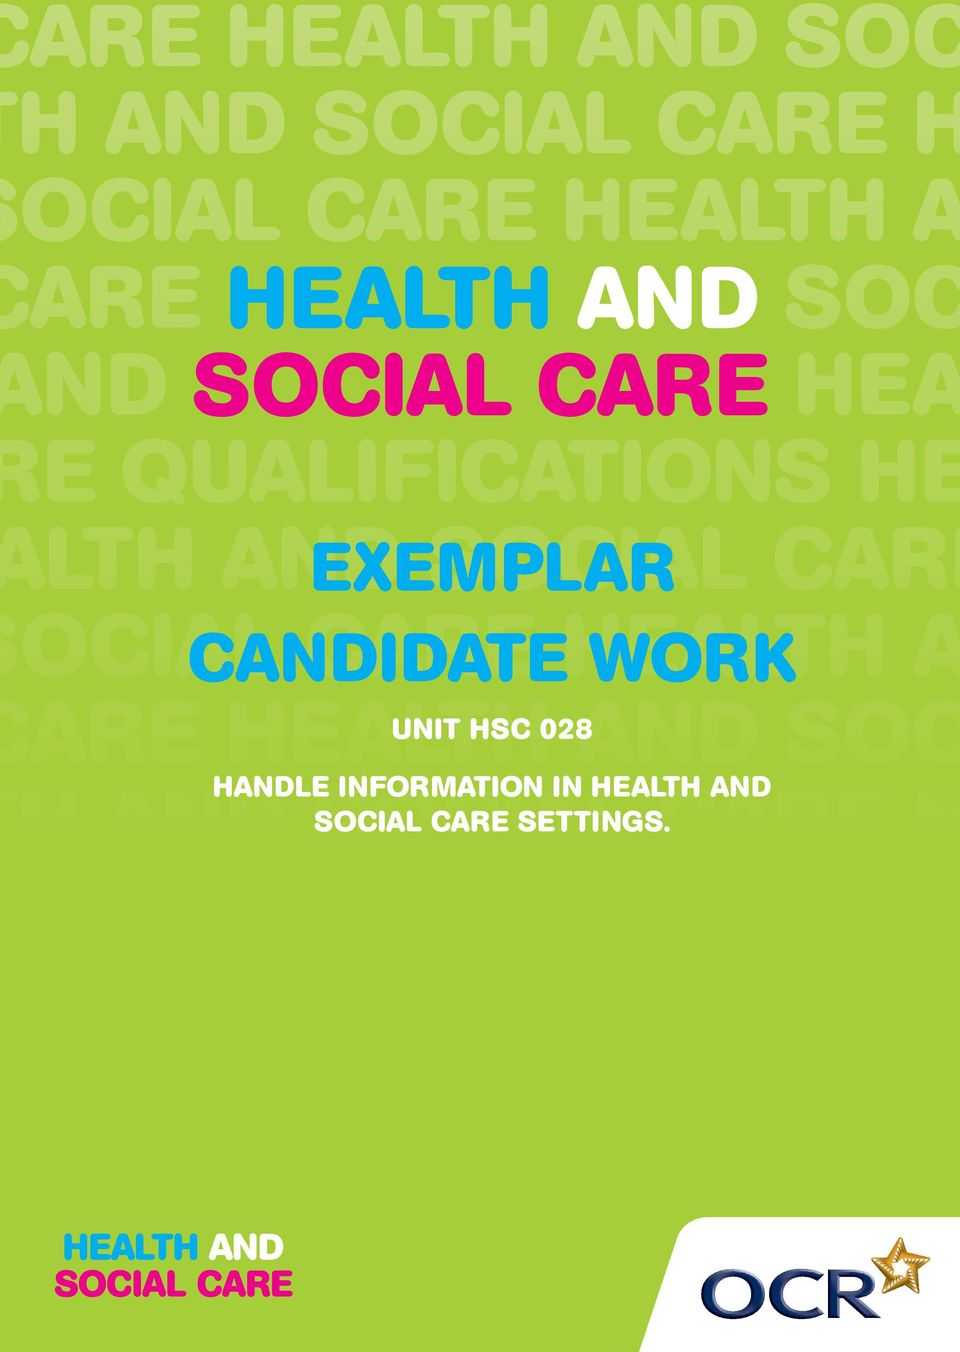 CARE OCIAL CANDIDATE CARE HEALTH WORK A ARE HEALTH AND SOC UNIT HSC 028